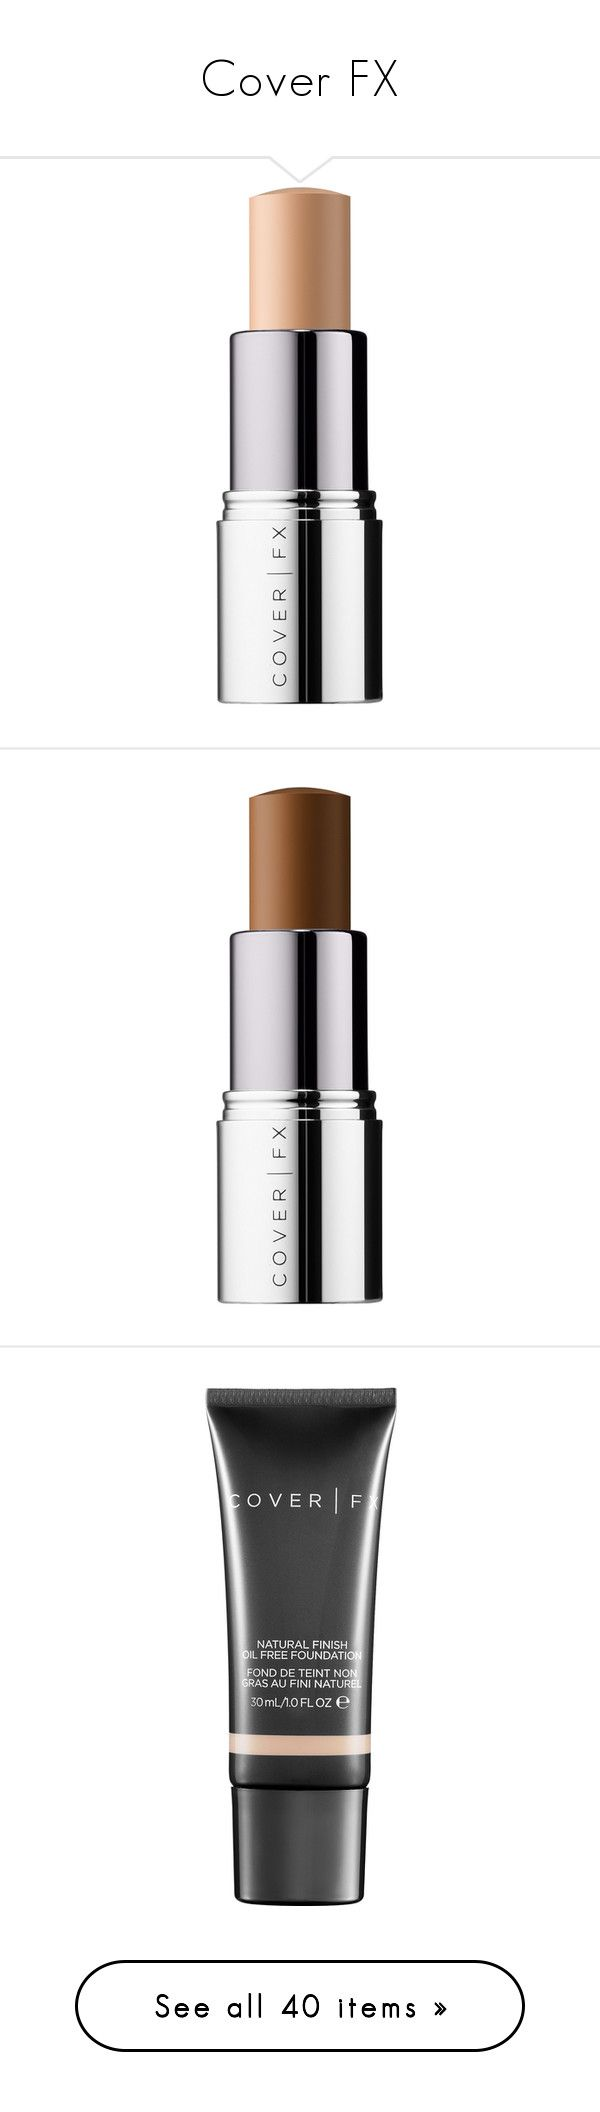 """""""Cover FX"""" by tina-teena ❤ liked on Polyvore featuring beauty products, makeup, face makeup, highlight makeup, cover fx makeup, cover fx, cover fx cosmetics, foundation, cover fx foundation and oil free foundation"""